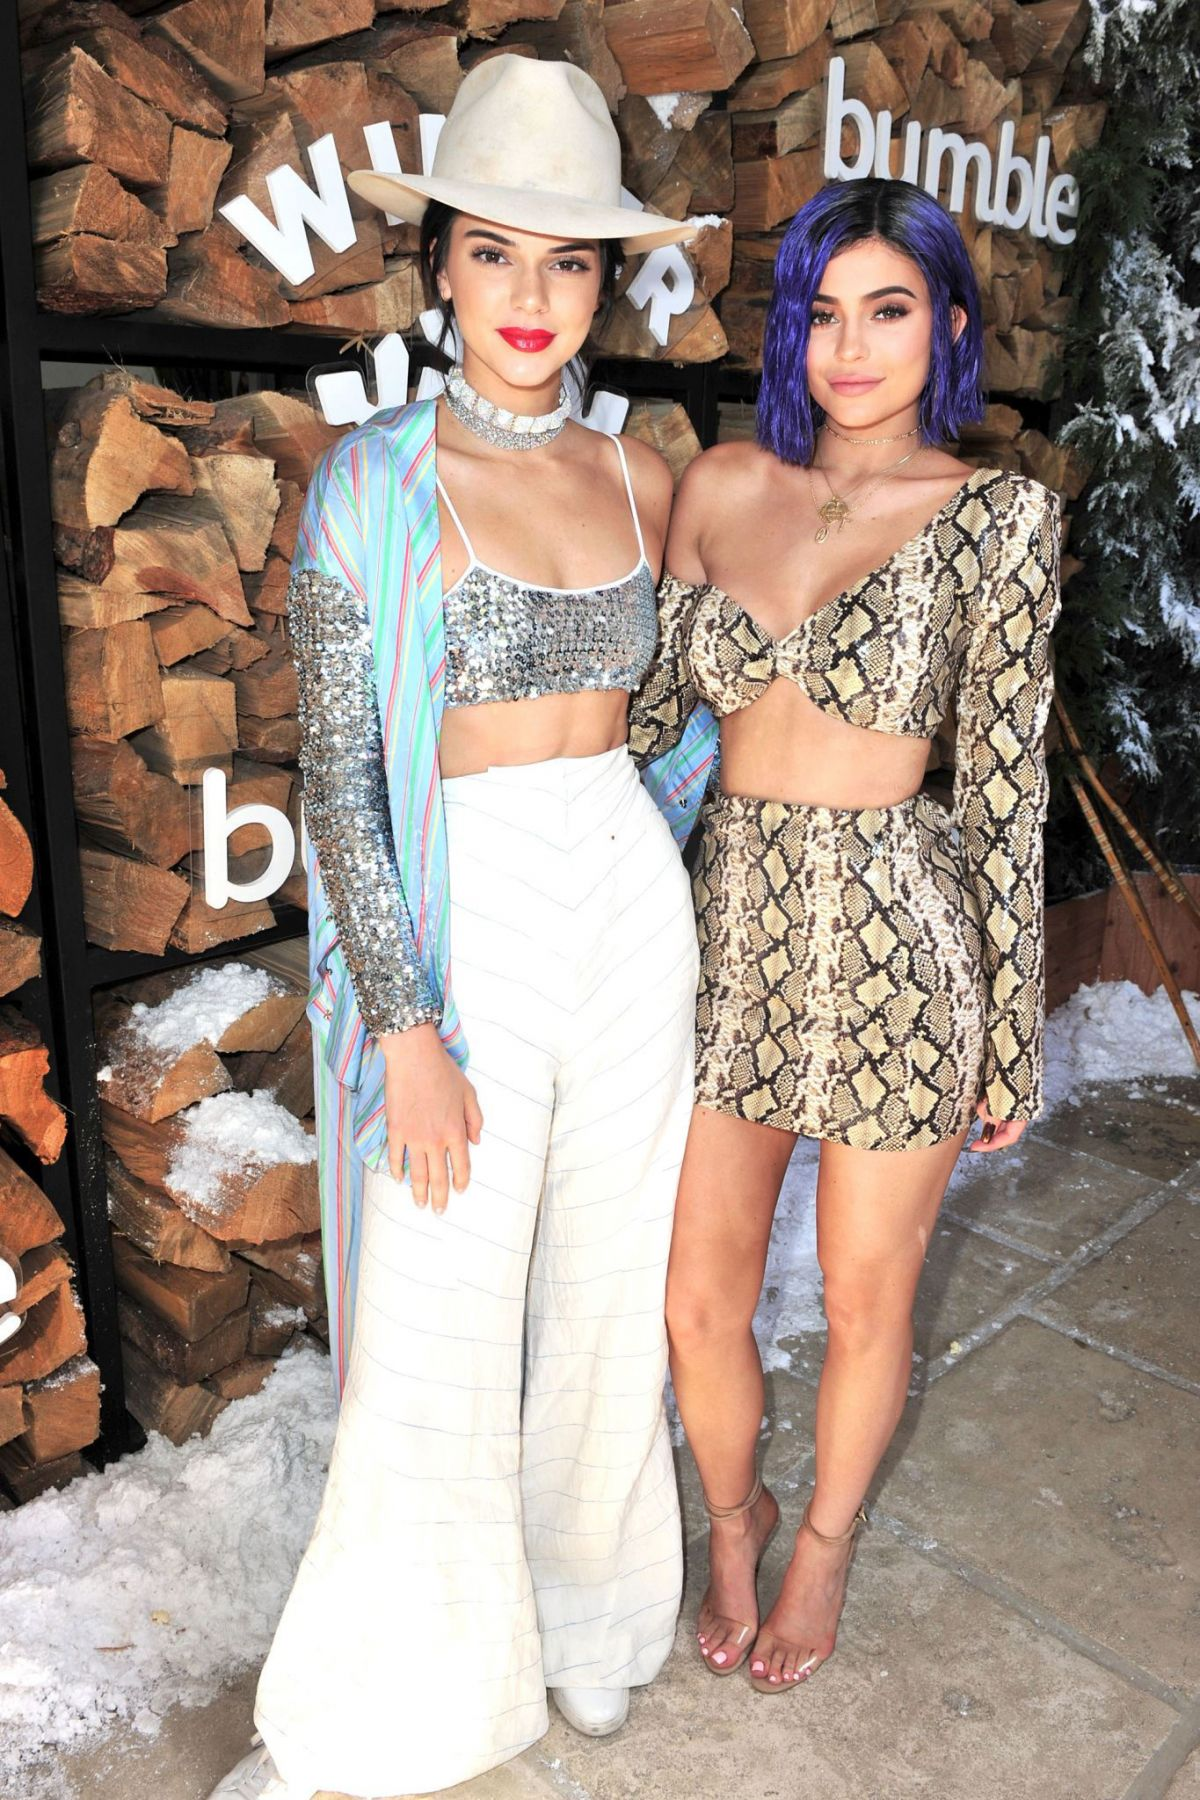 KYLIE and KENDALL JENNER at Winter Bumberland Party at Coachella 2017 in Indio 04/15/2017